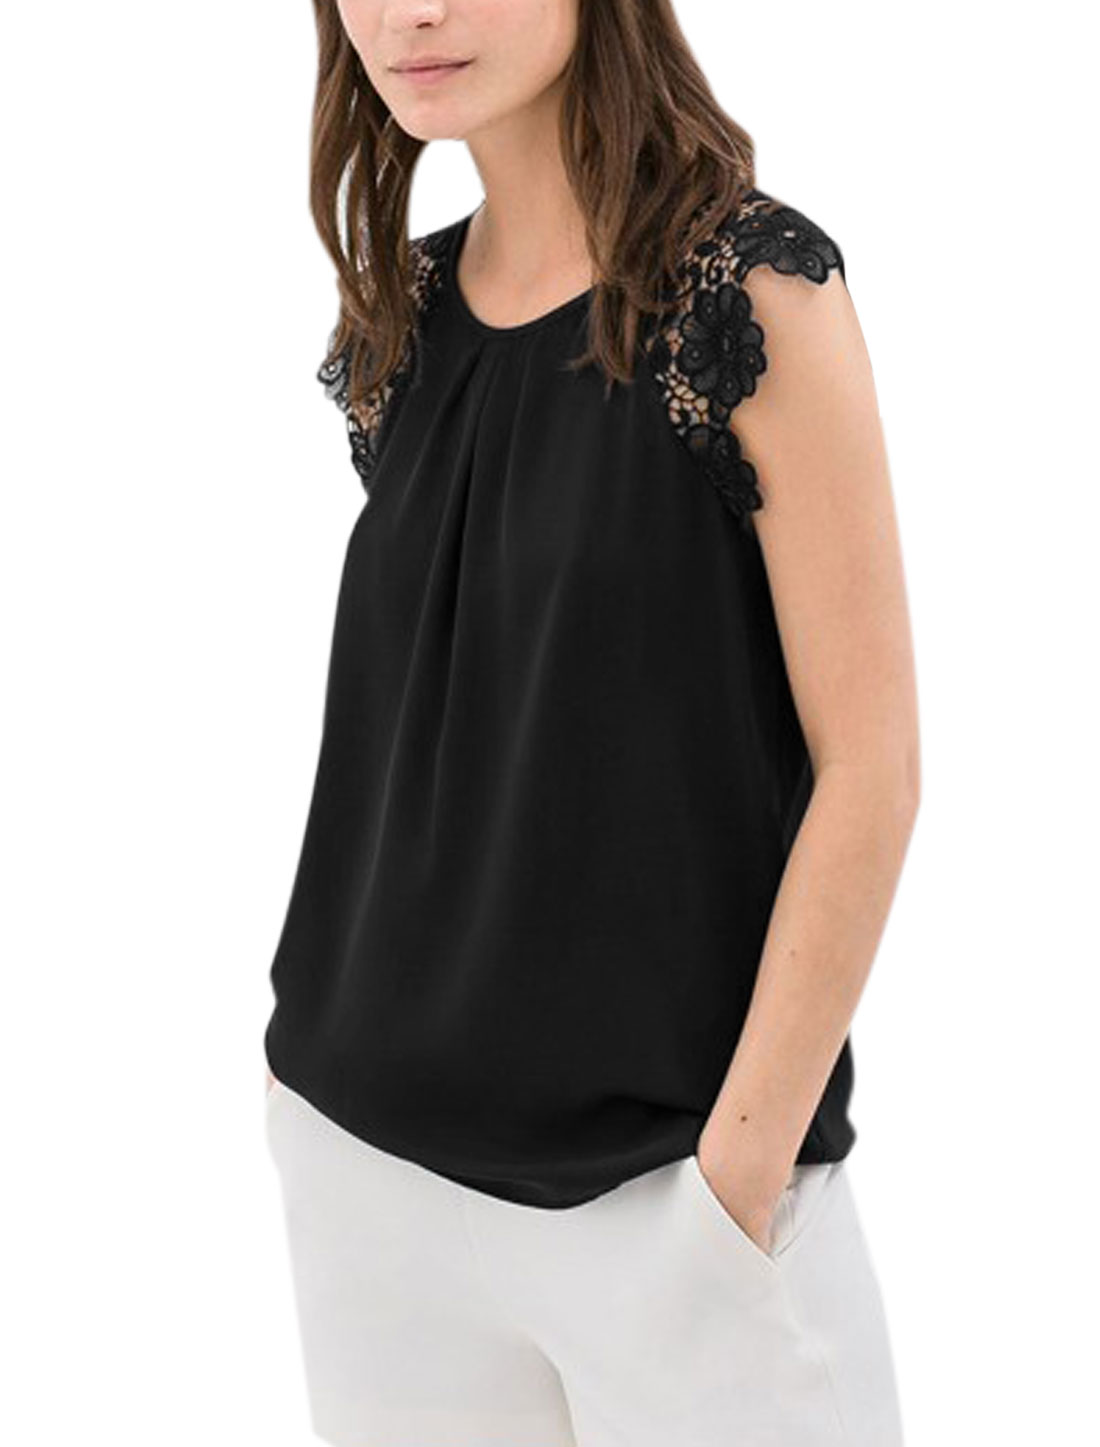 Lady Crochet Shoulder Sleeveless Spliced Unlined Chiffon Blouse Black L